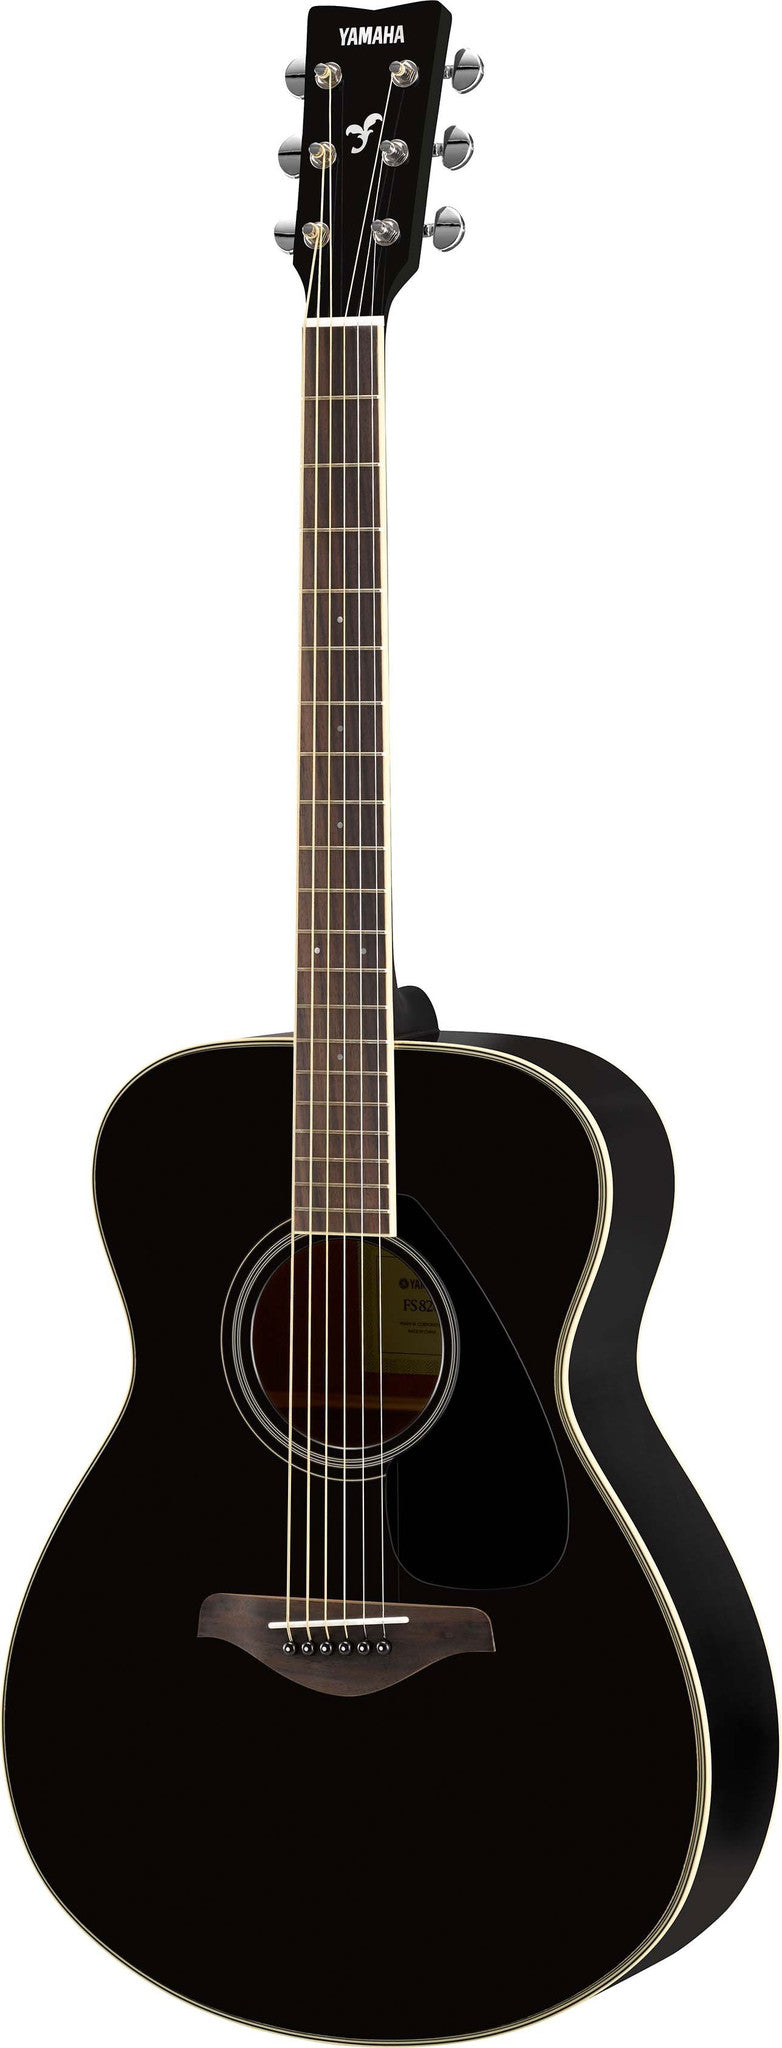 Yamaha FS820BL Small Body Acoustic Guitar Bundle